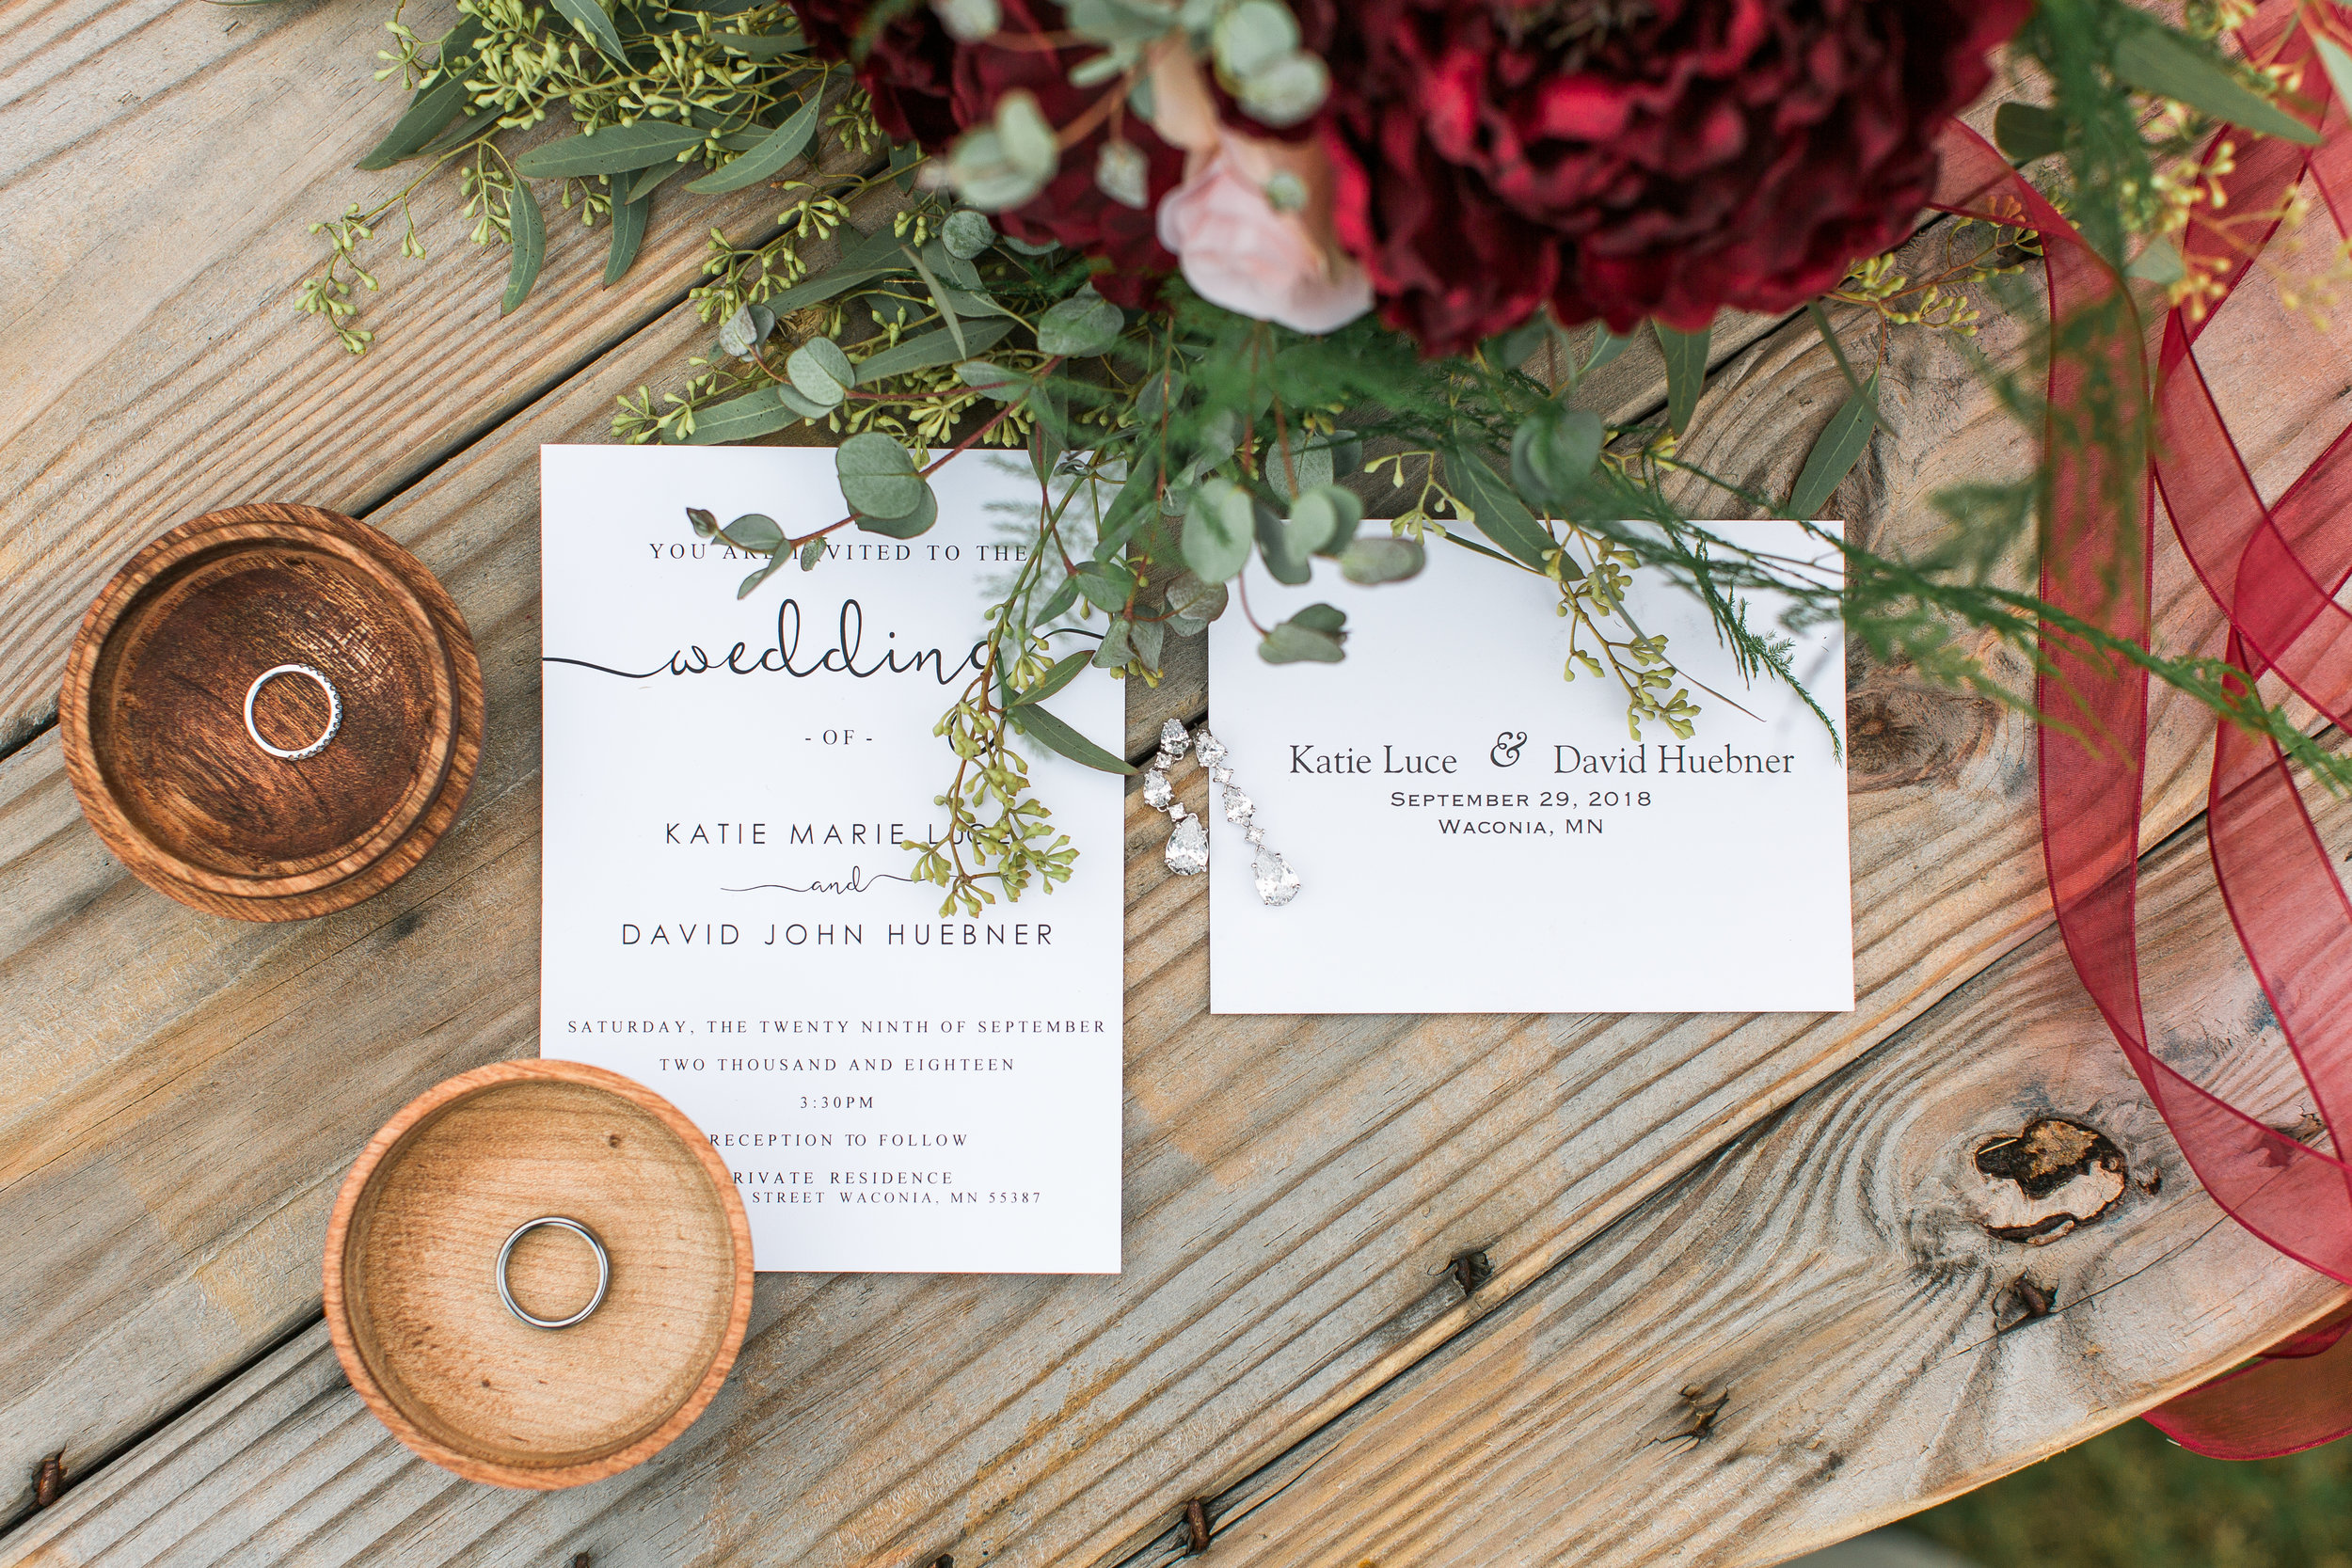 Wedding invitation details Minnesota fall wedding burgundy Mallory Kiesow photography Minnesota backyard wedding